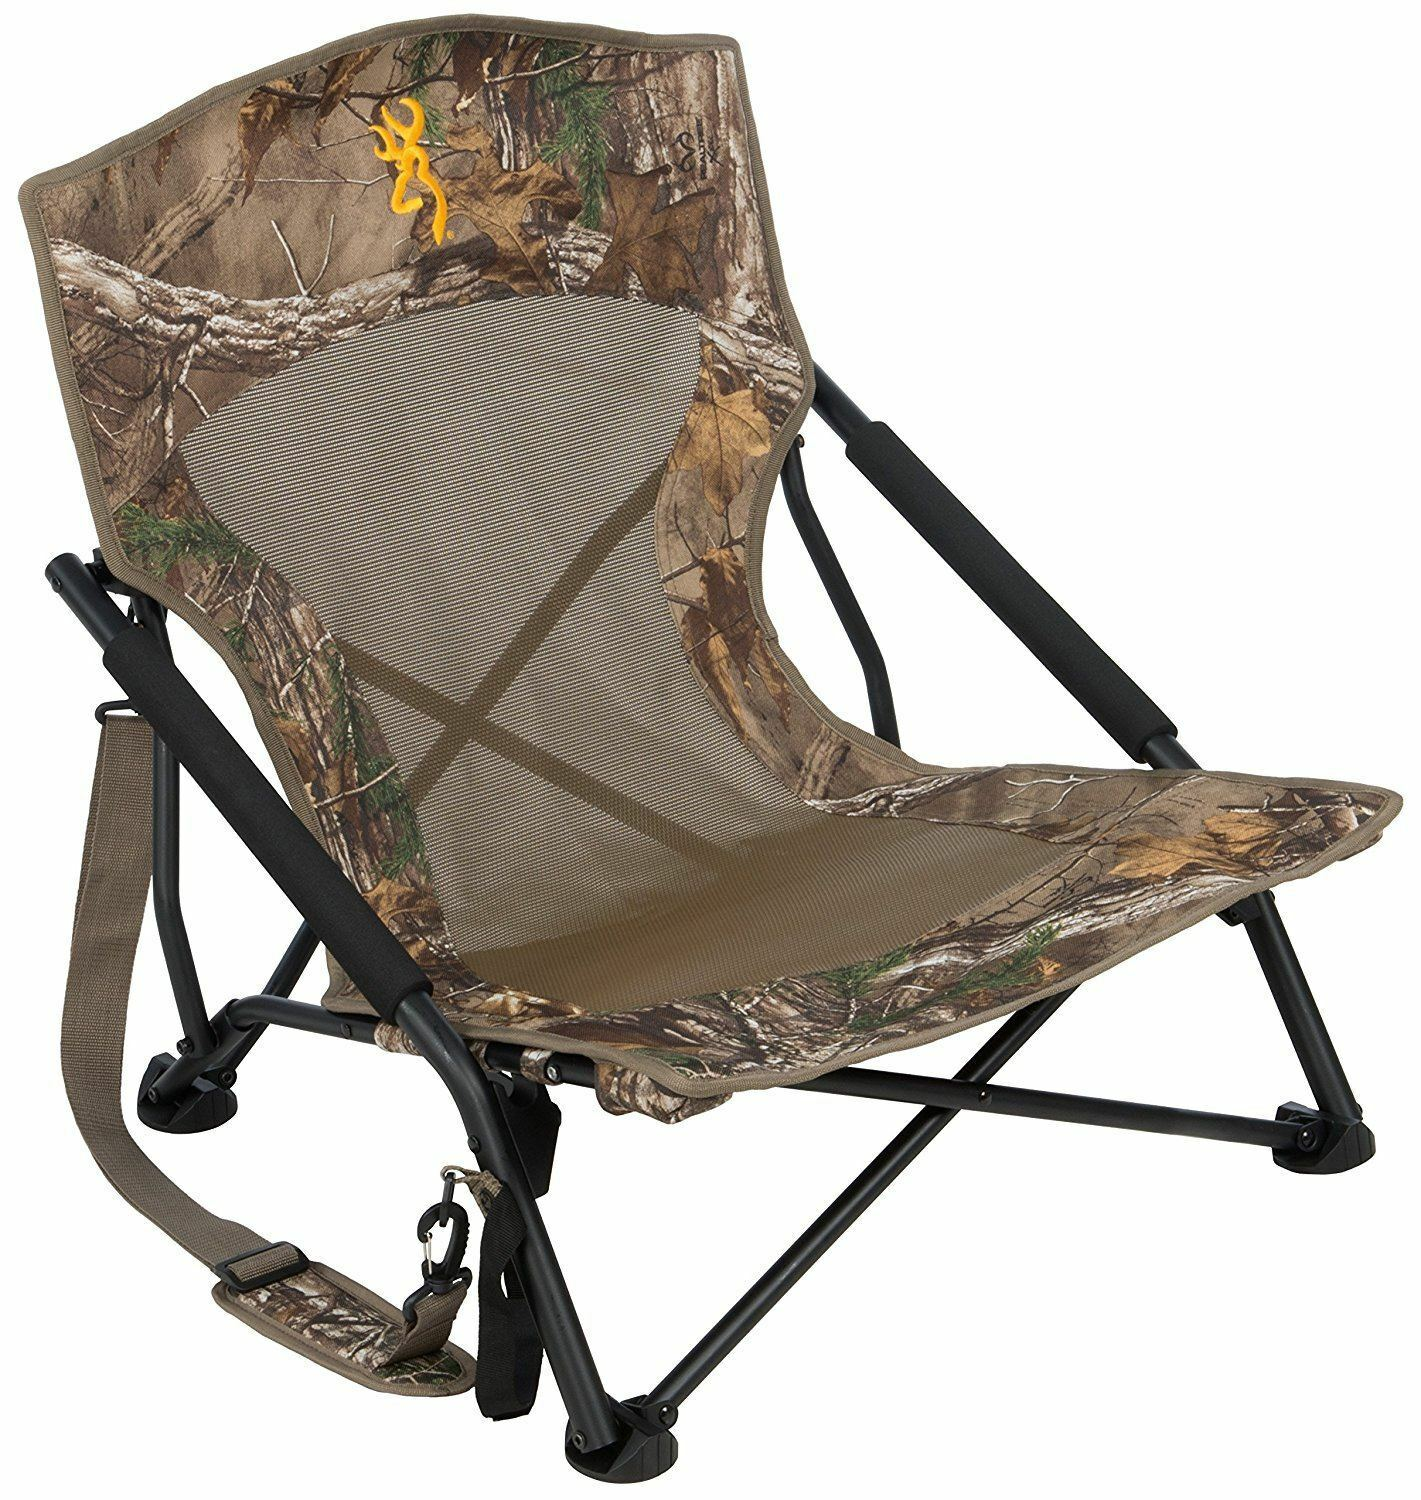 Picture 1 of 5 ...  sc 1 st  eBay & Camo Hunting Chair Blind Folding Seat Camping Outdoor Turkey Back ...